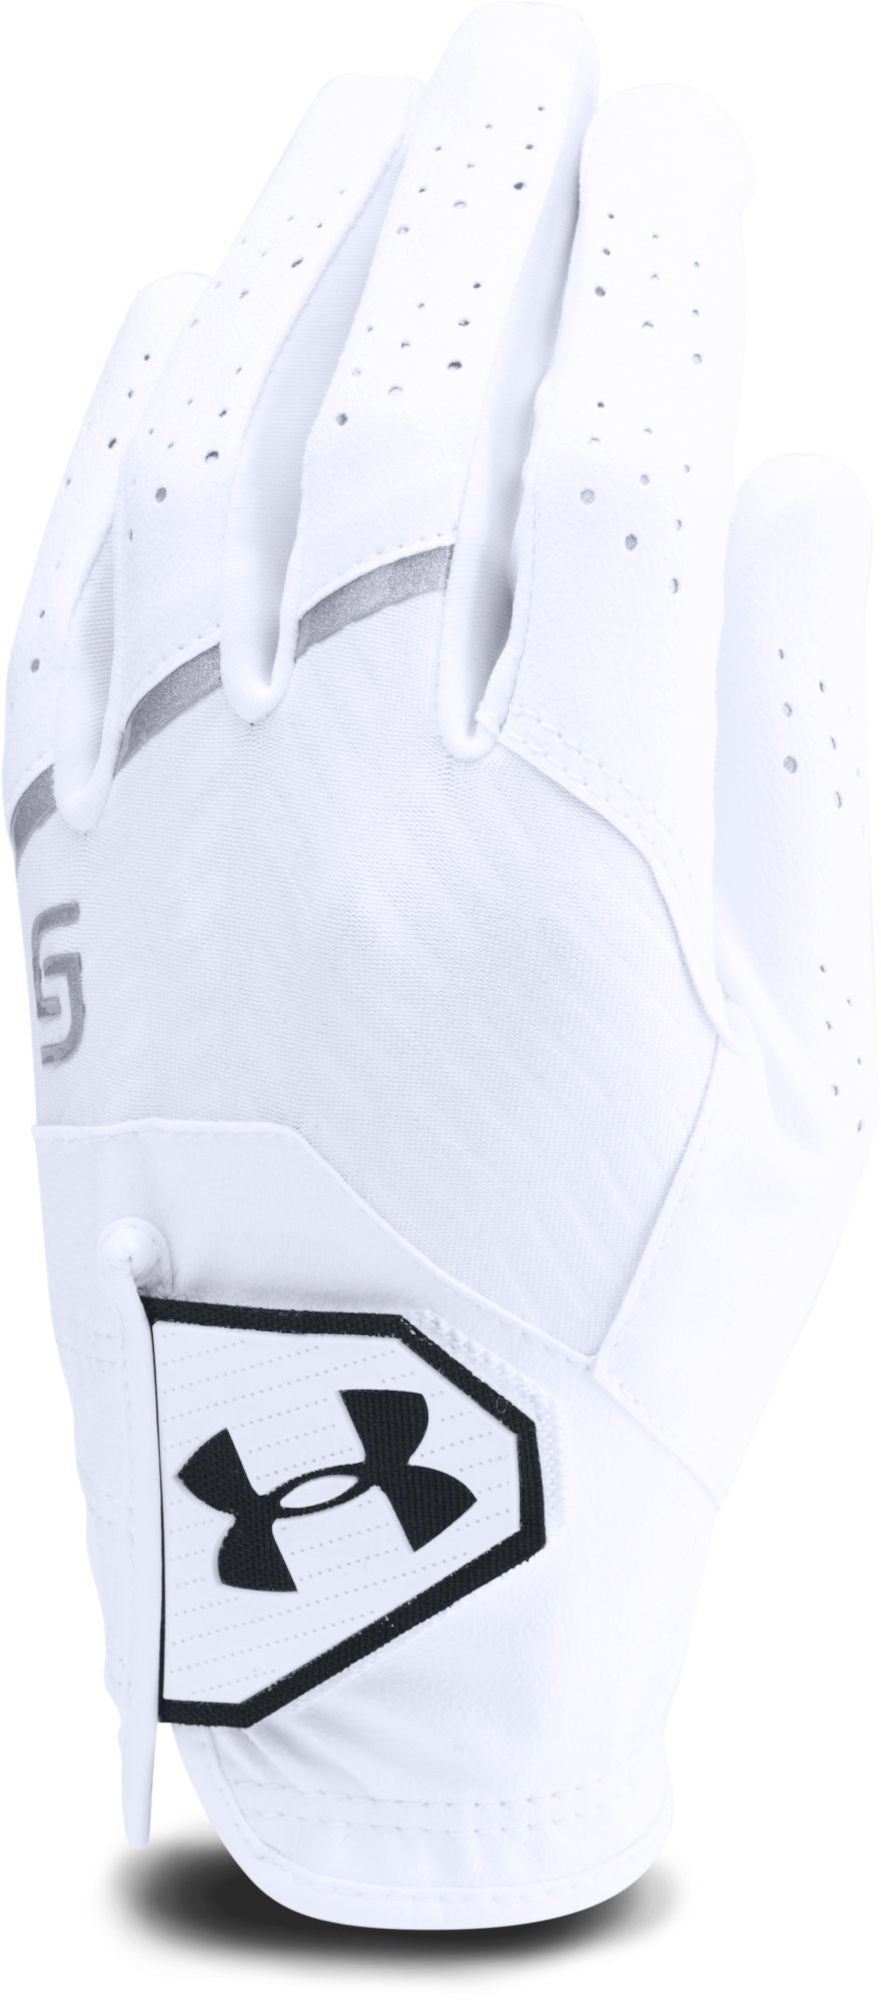 Under Armour Youth Coolswitch Golfhandske Højre, White L